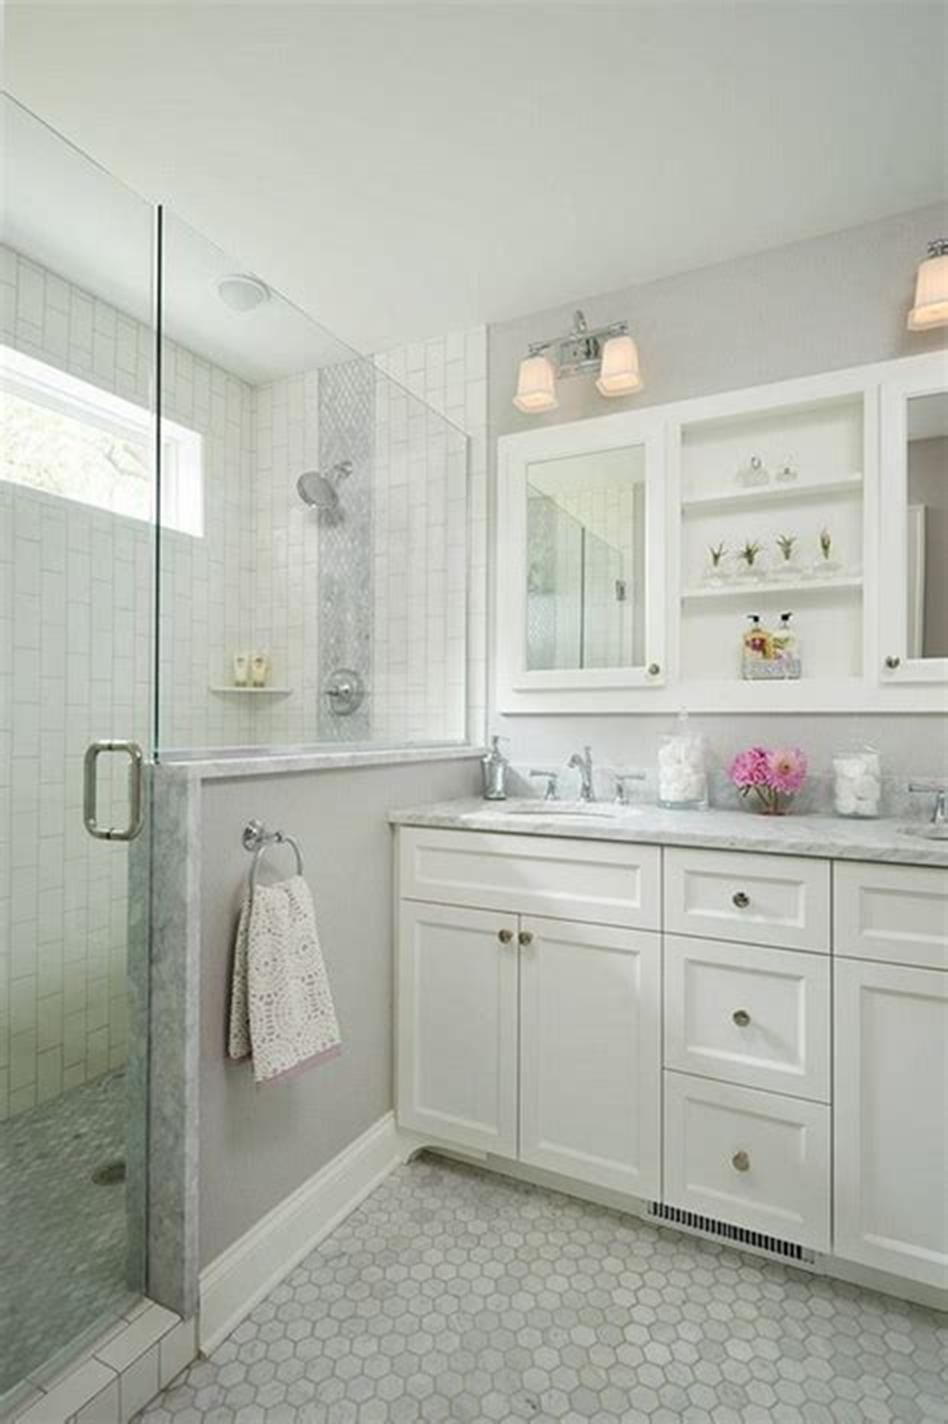 23 Perfect Small Master Bathroom Remodel Ideas To Inspire You